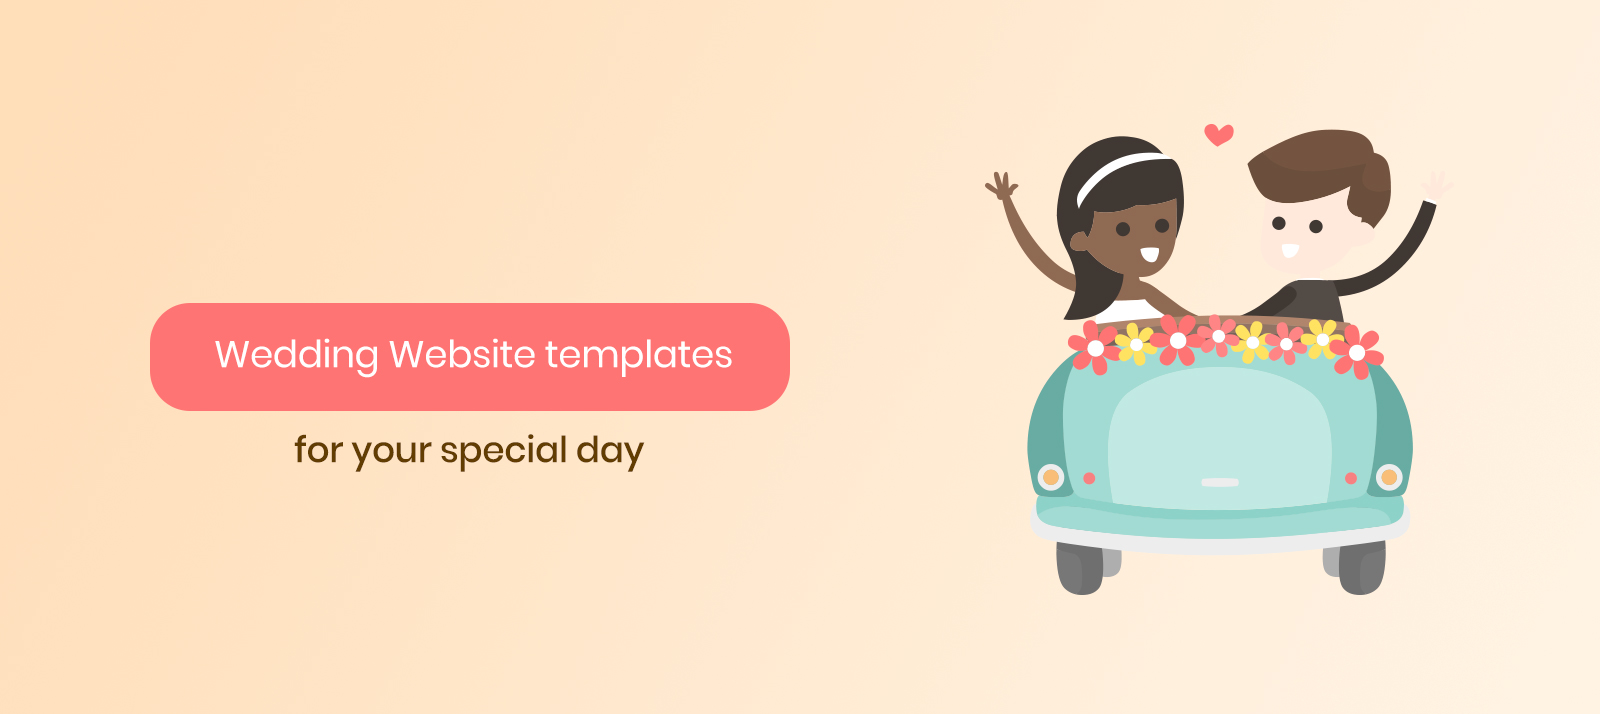 10 Best Wedding Website Templates For Your Special Day